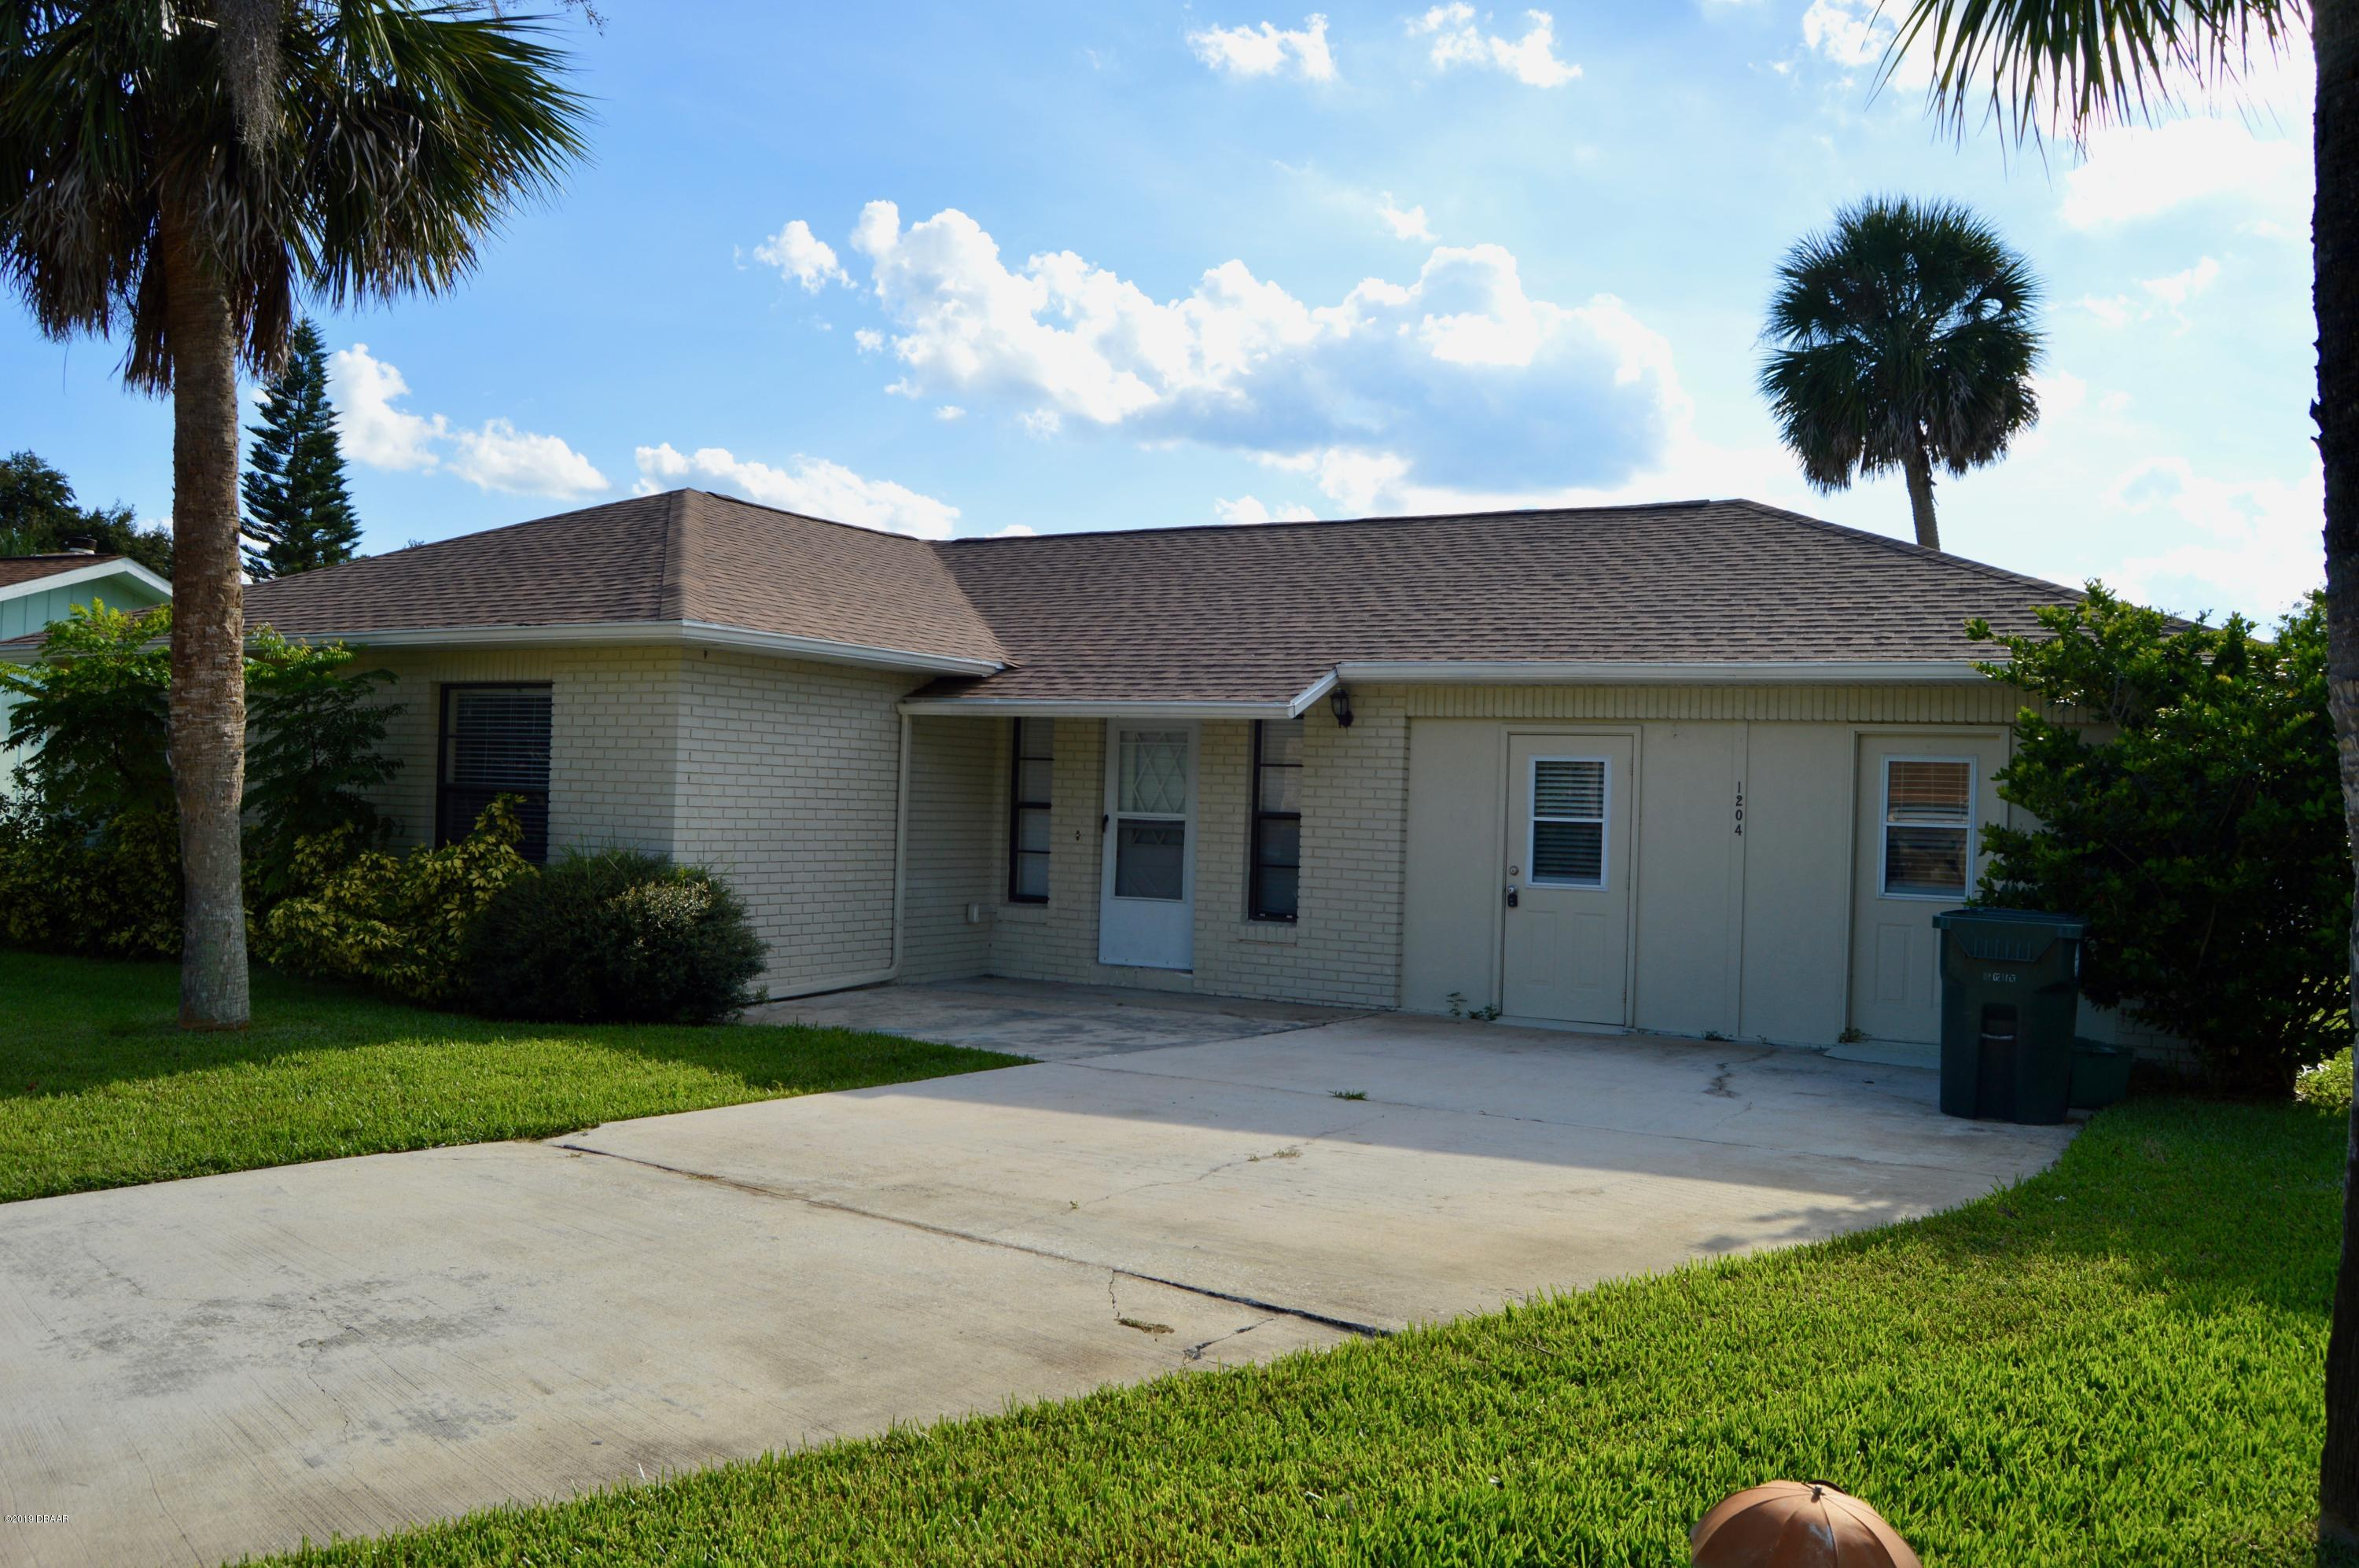 Photo of 1204 Ruthbern Road, Daytona Beach, FL 32114